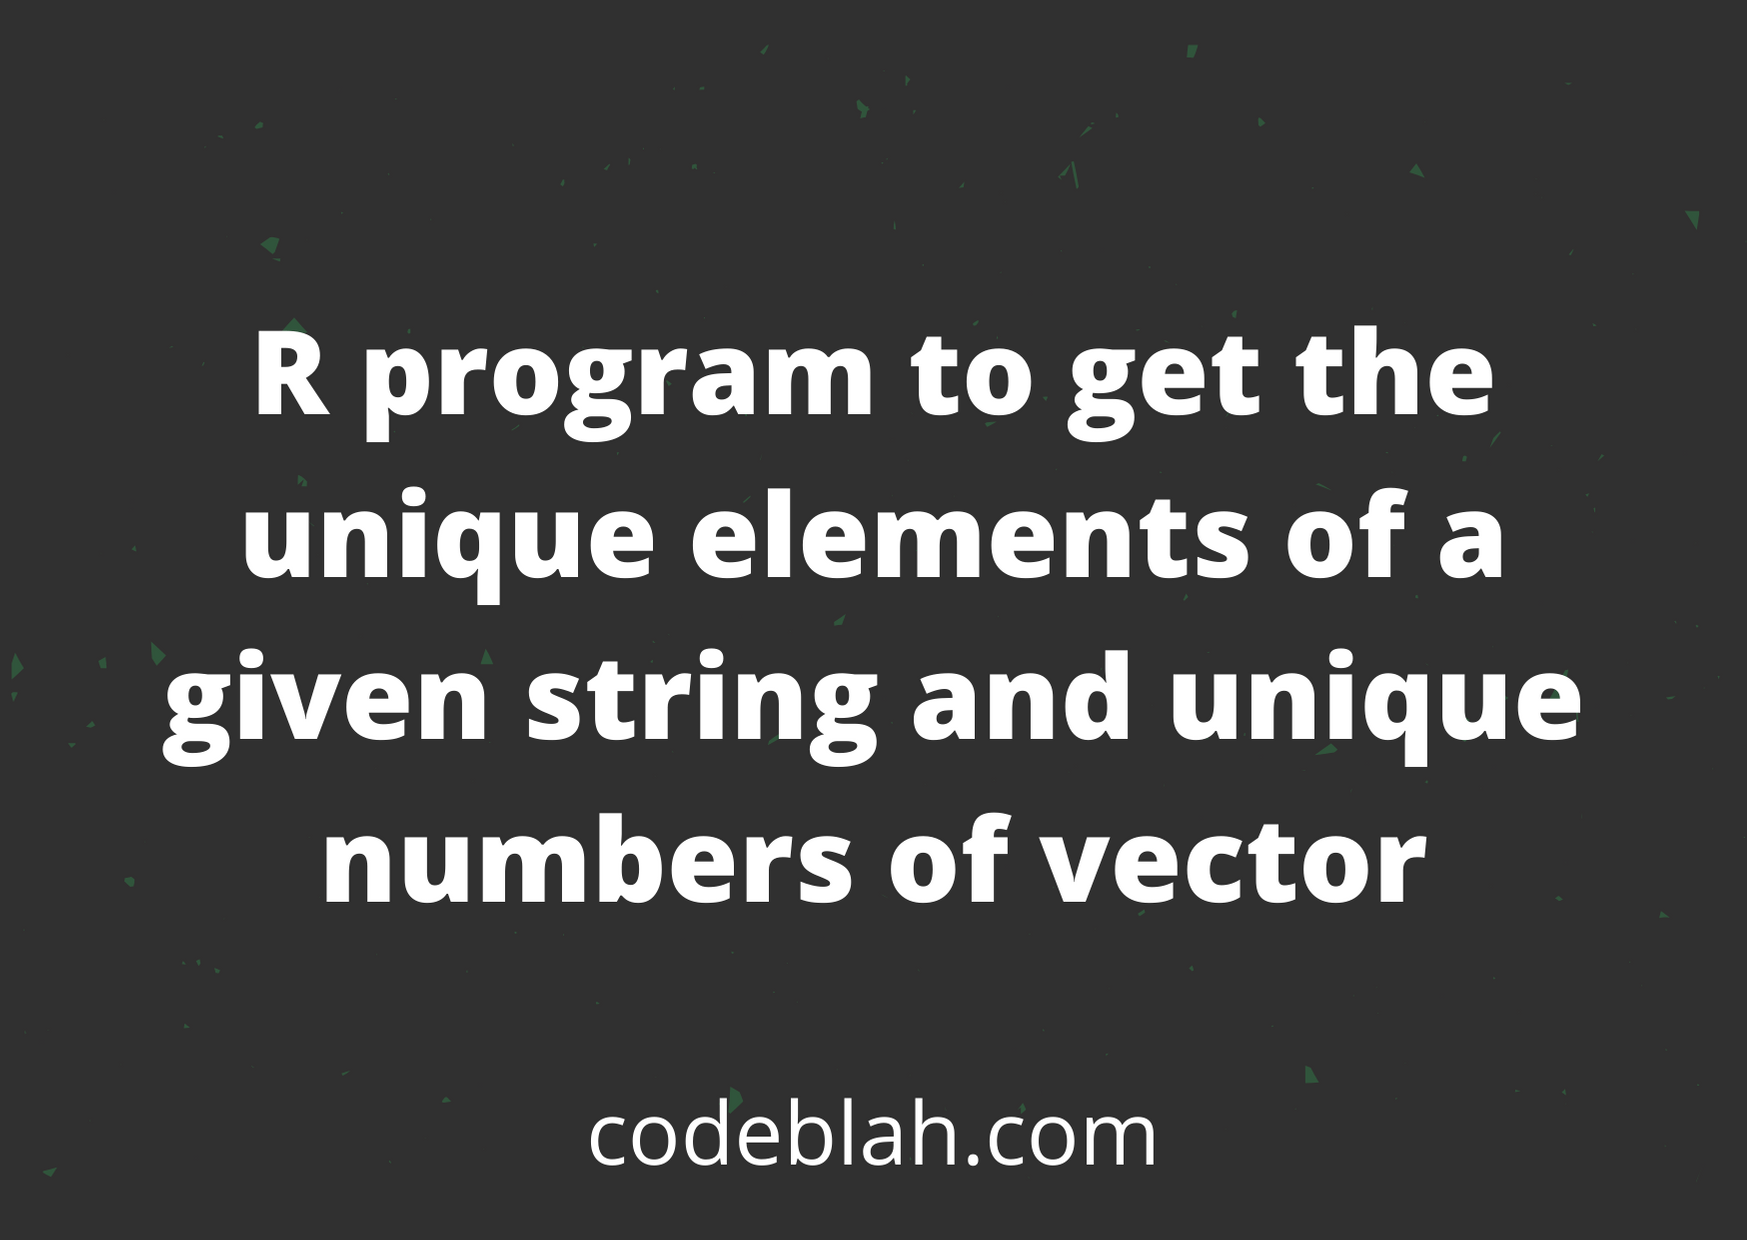 R Program To Get the Unique Elements of a Given String and vector